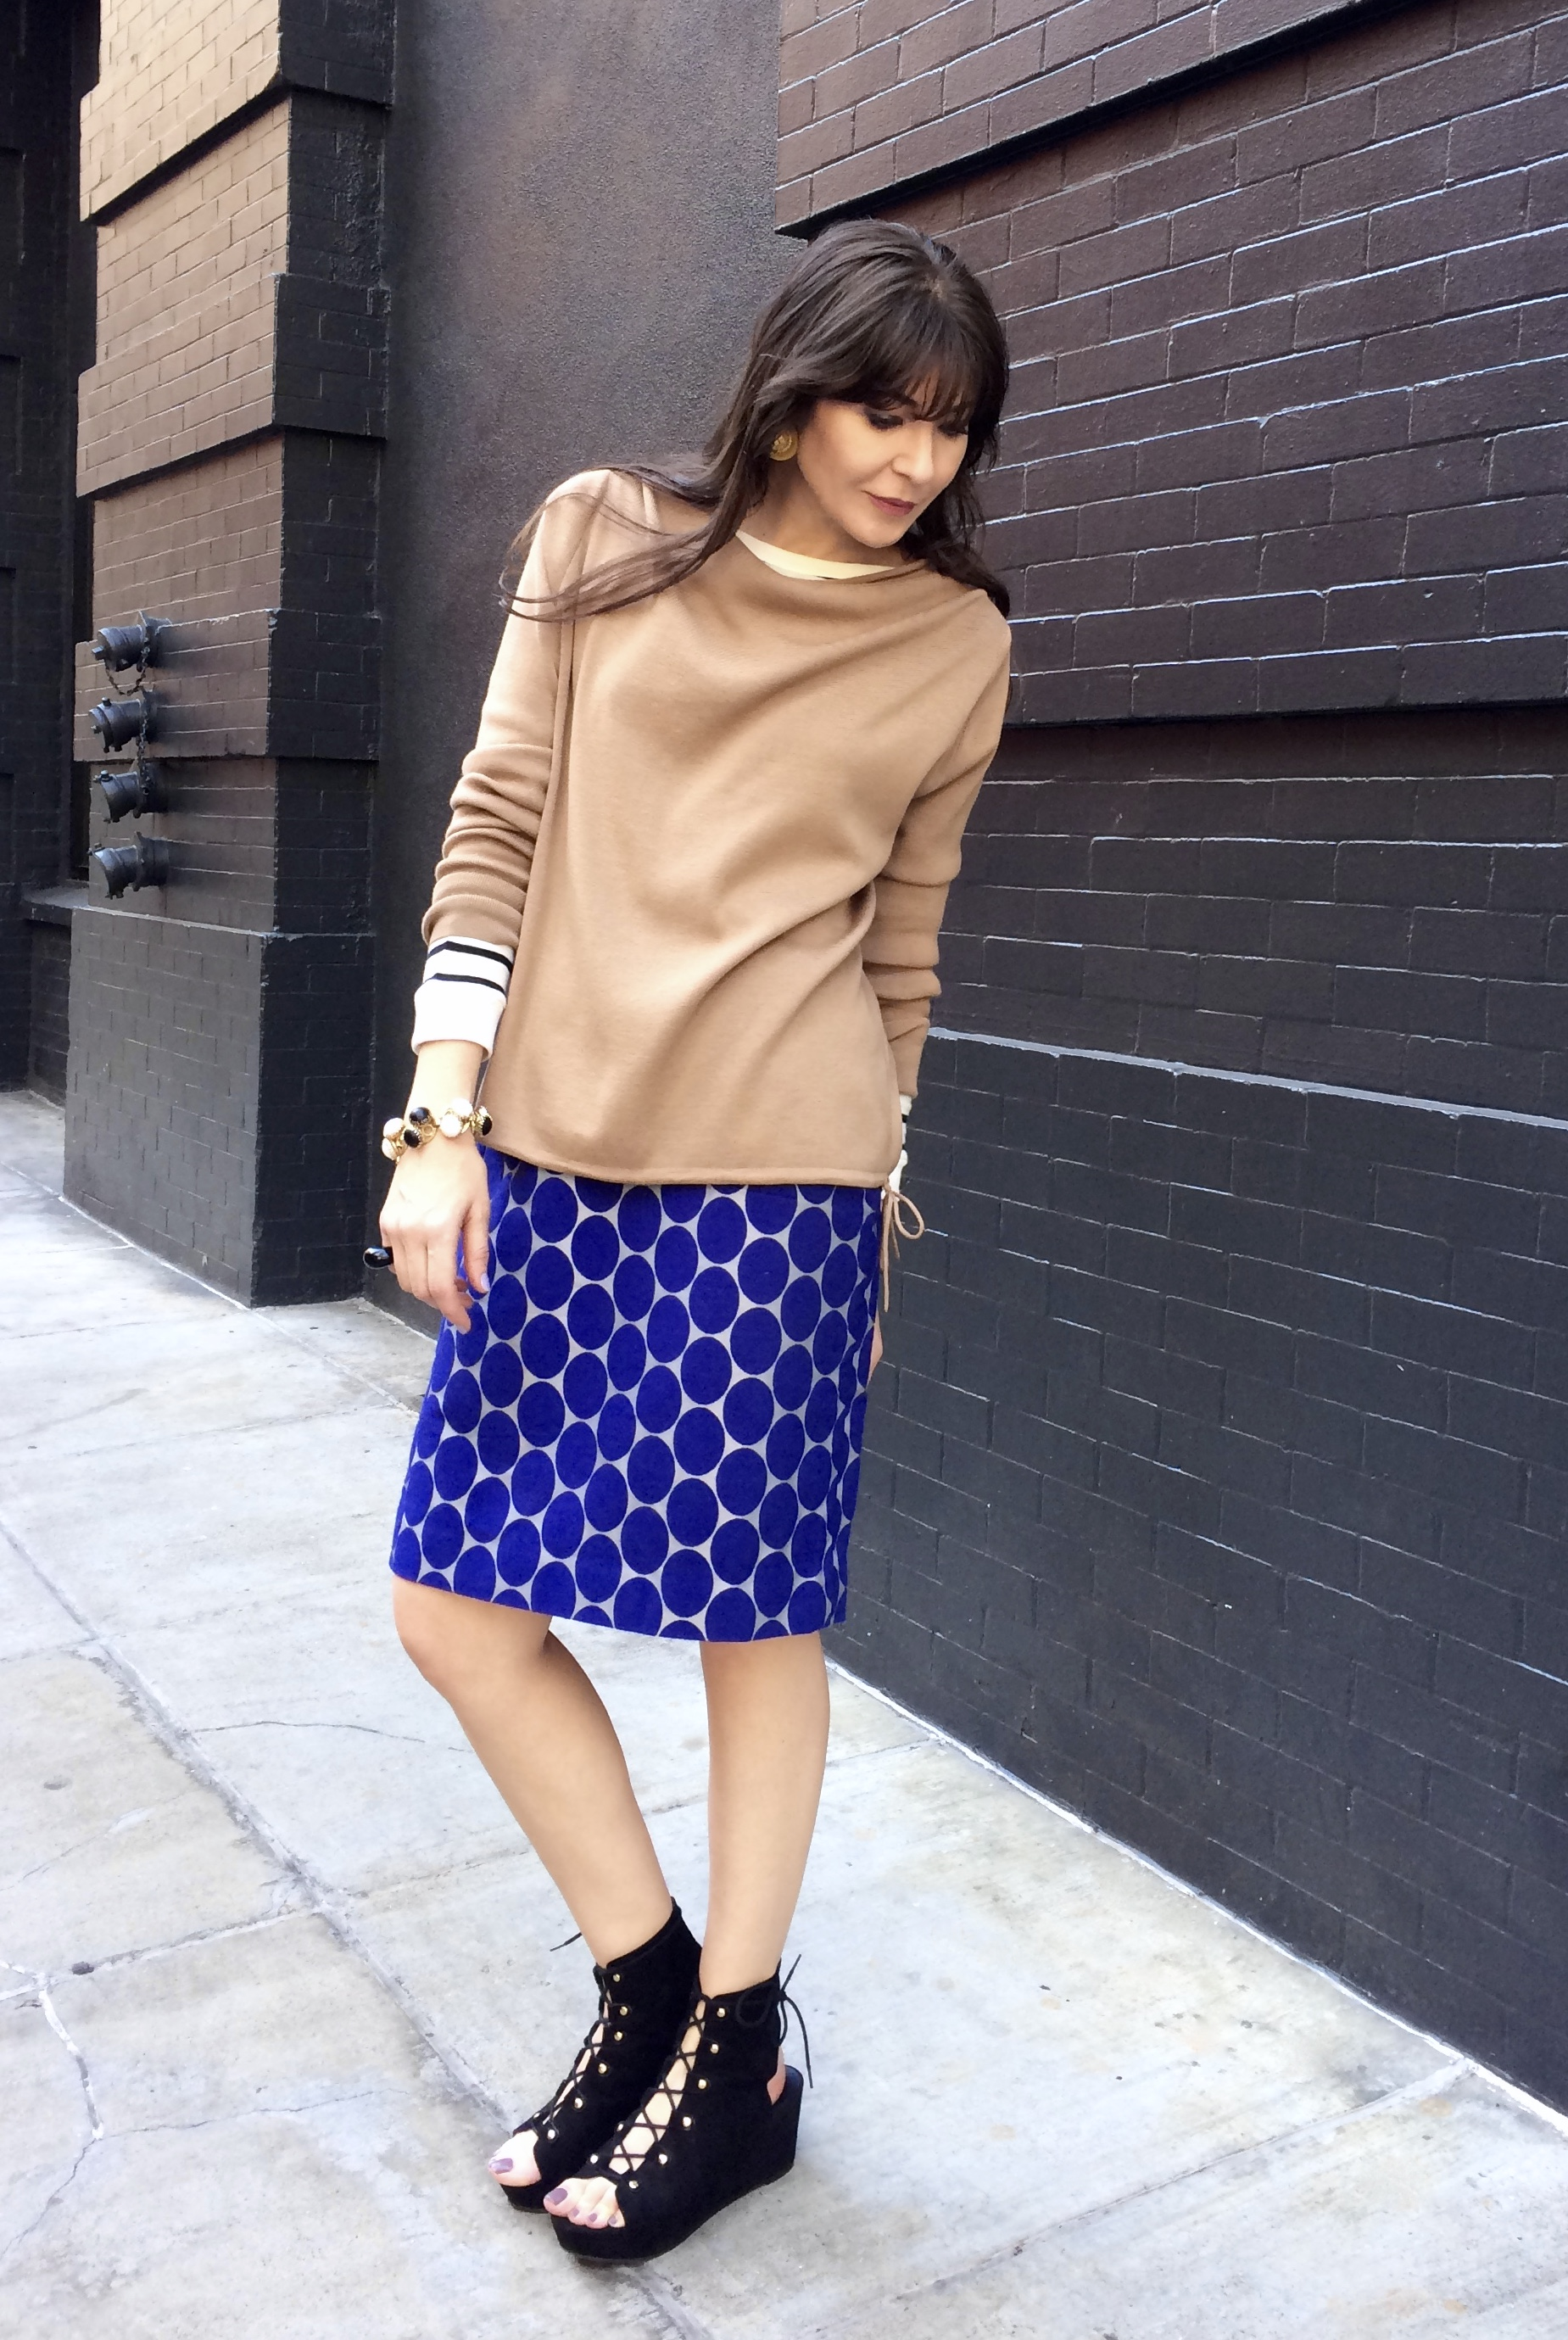 Mixing prints: Stripes and dots.